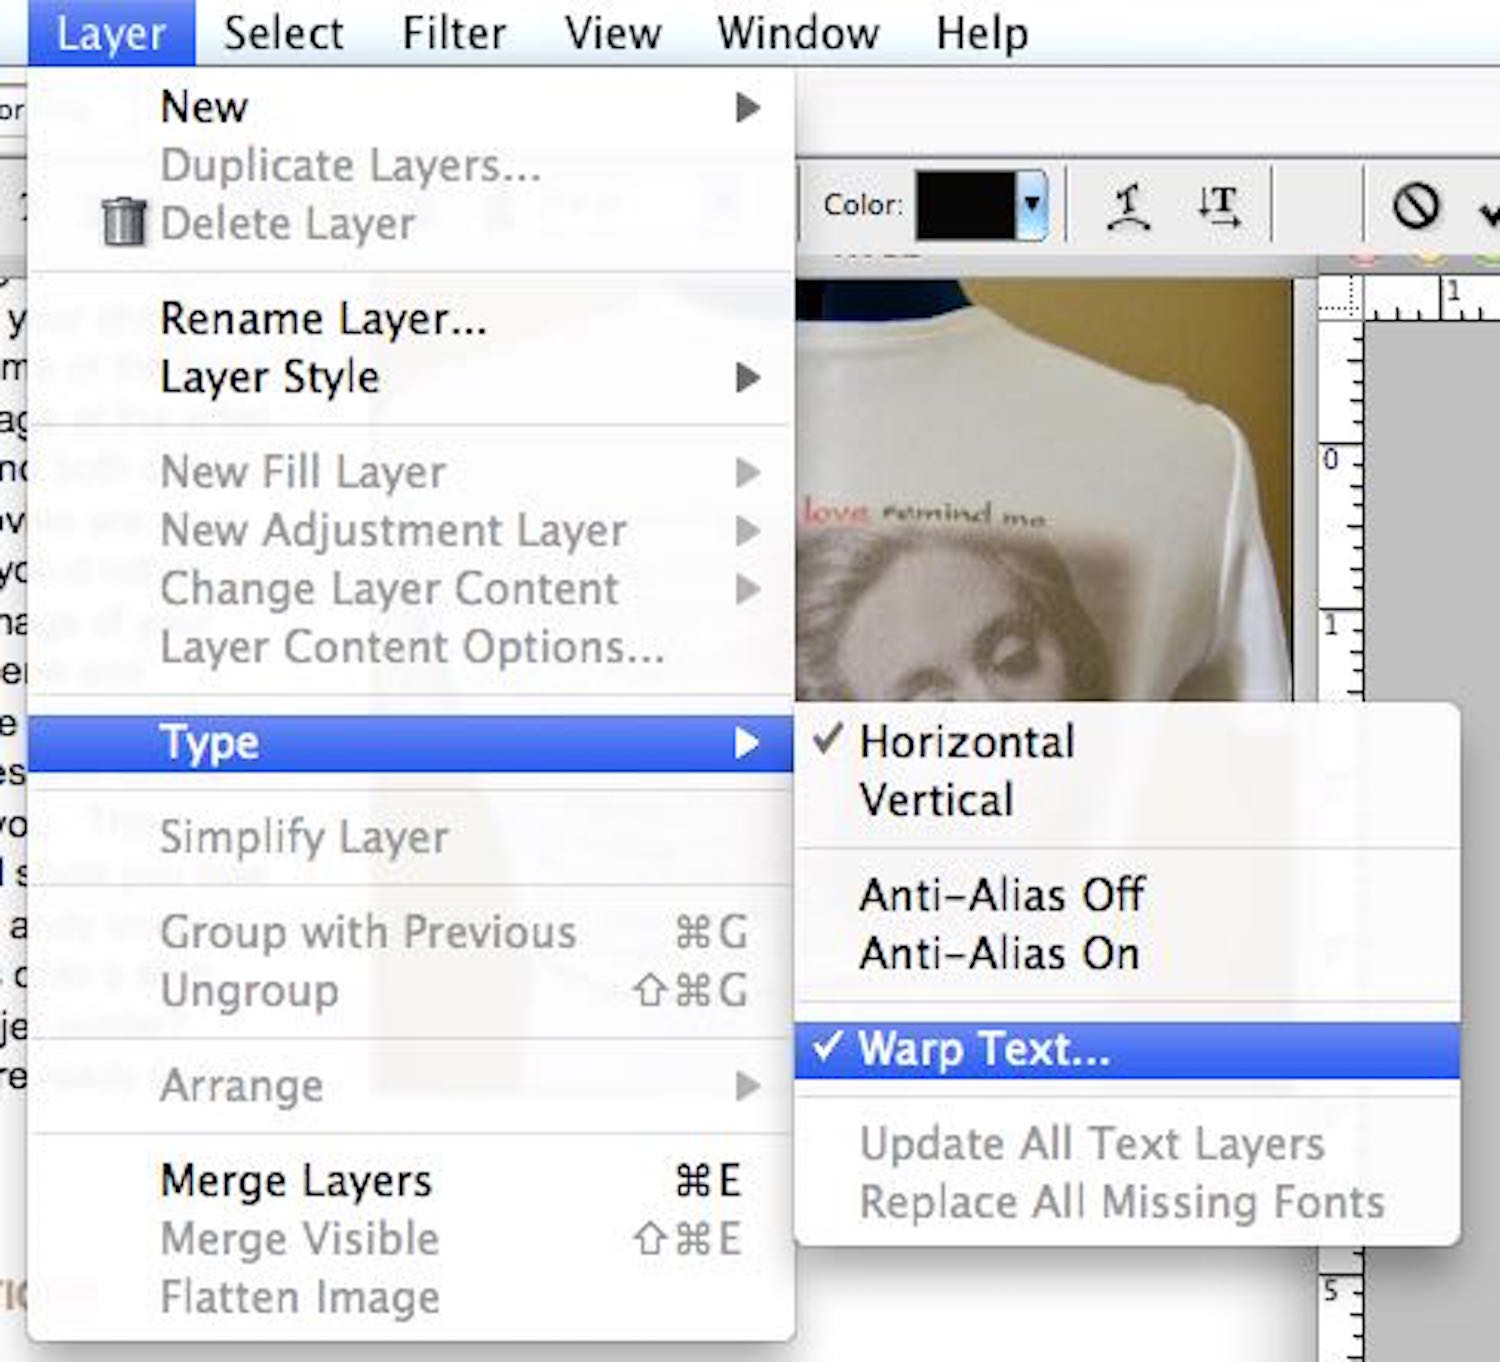 step 2 - To wave the text, select it with the text tool.  Go to the Layer menu and select Type then Warp Text.